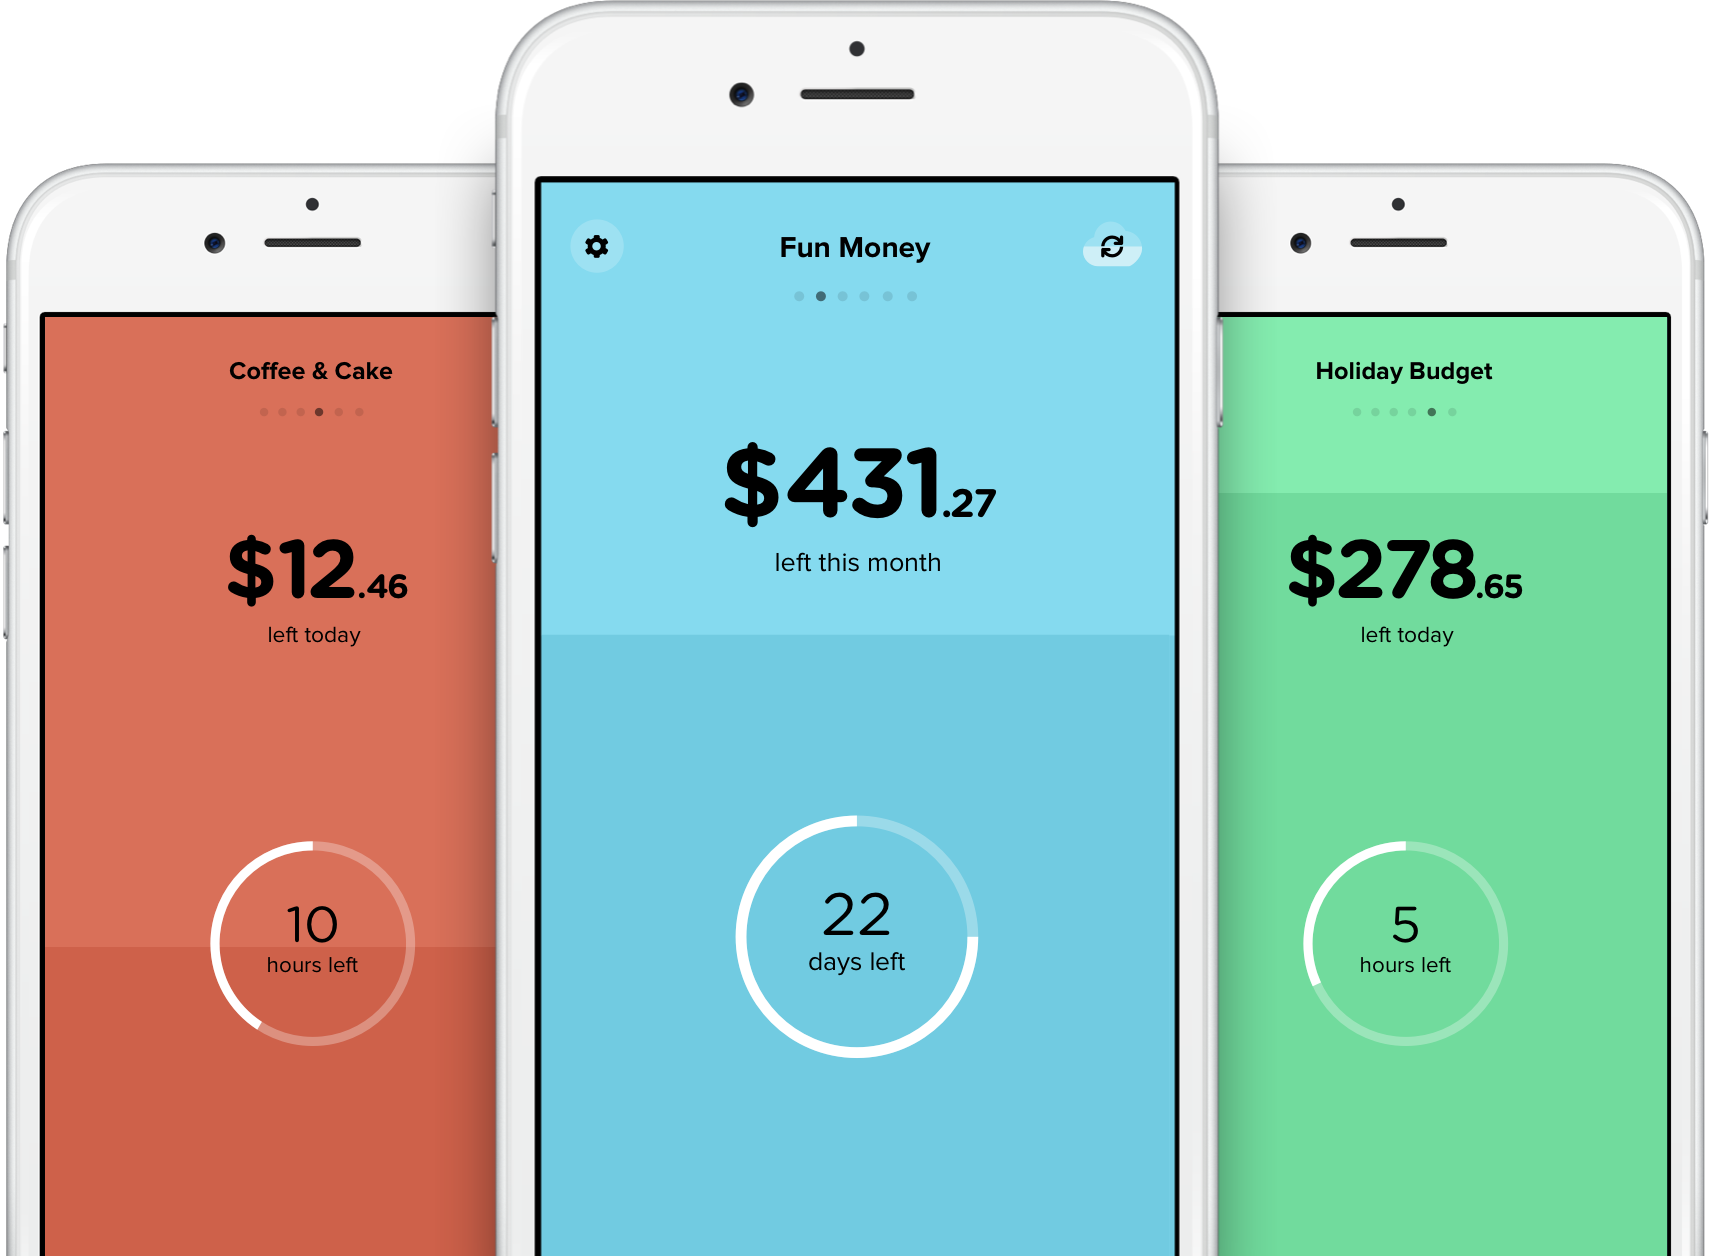 The Pennies iPhone app allows you to track multiple personal budgets